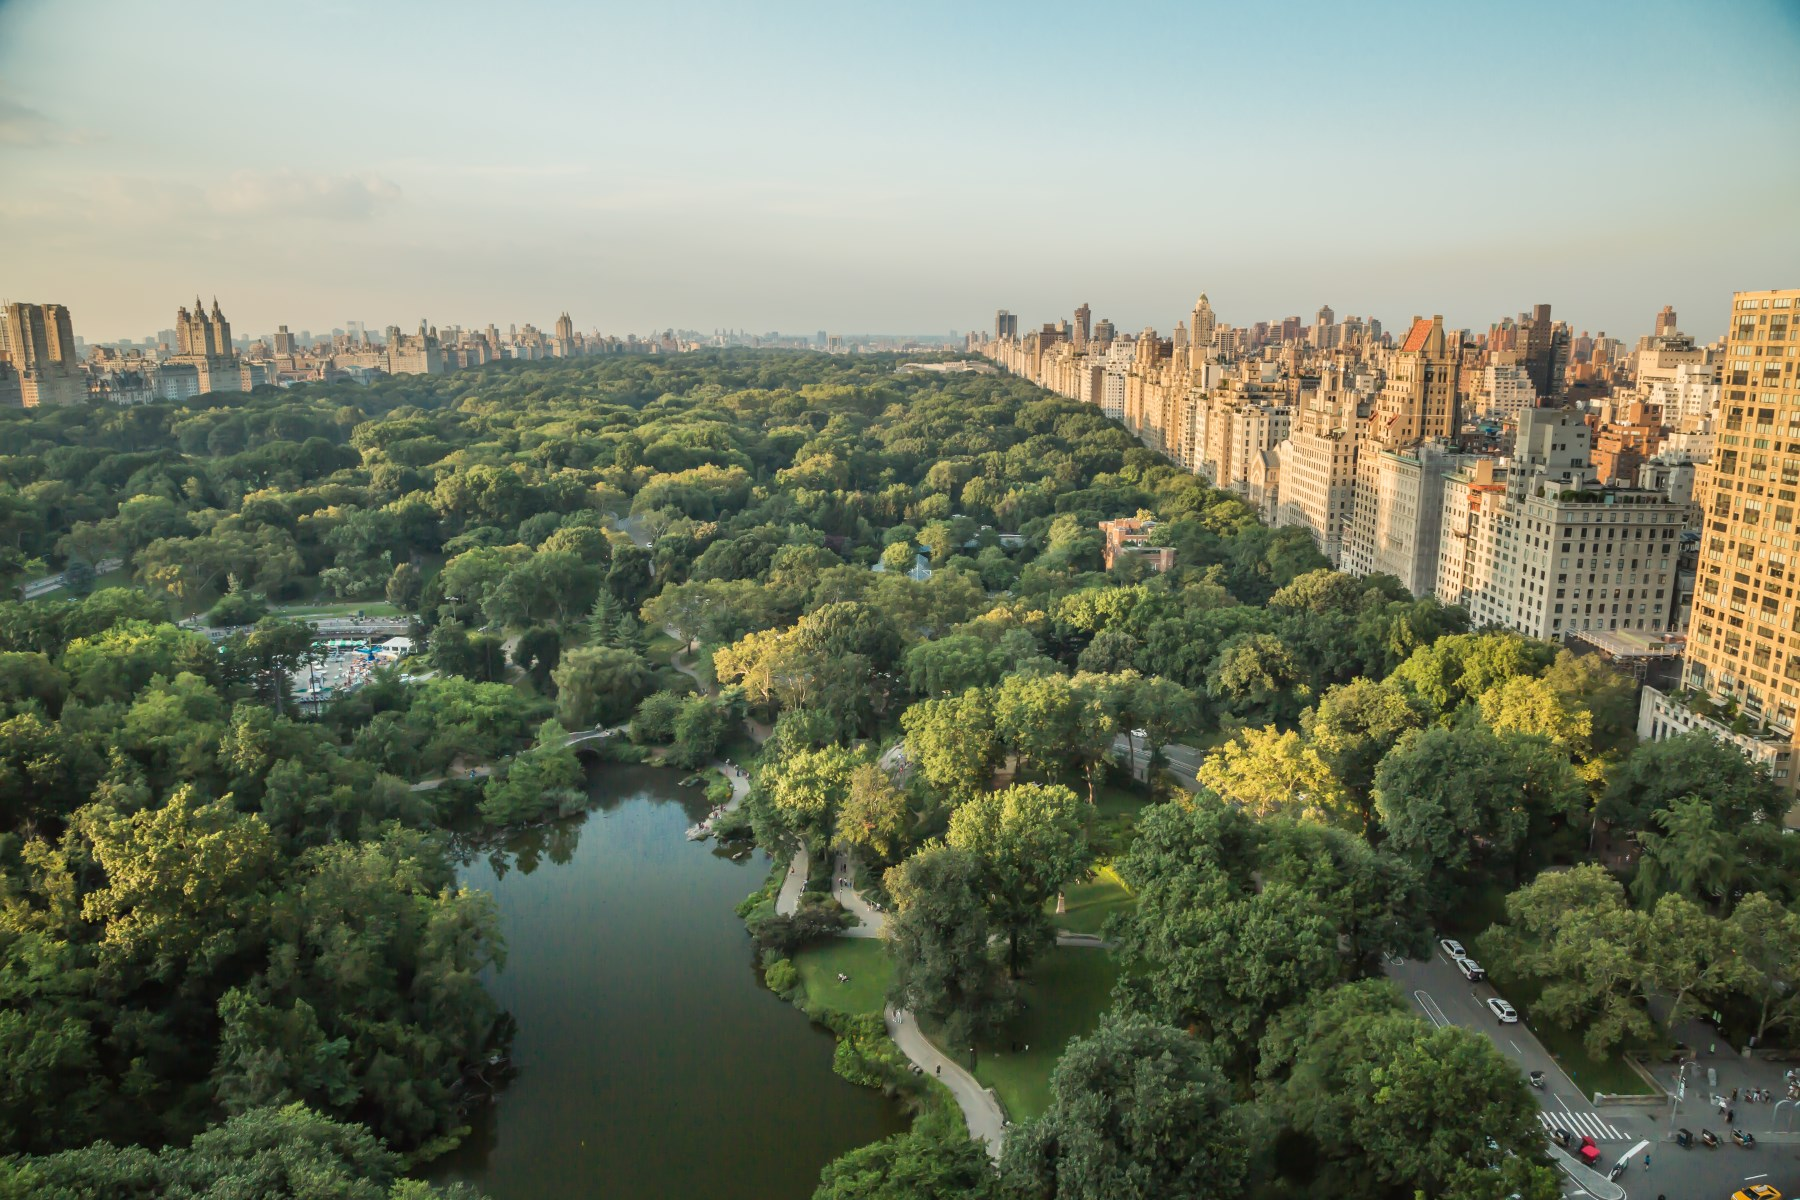 Condominium for Sale at 1 Central Park South APT 2003 1 Central Park South PH 2003 New York, New York 10019 United States